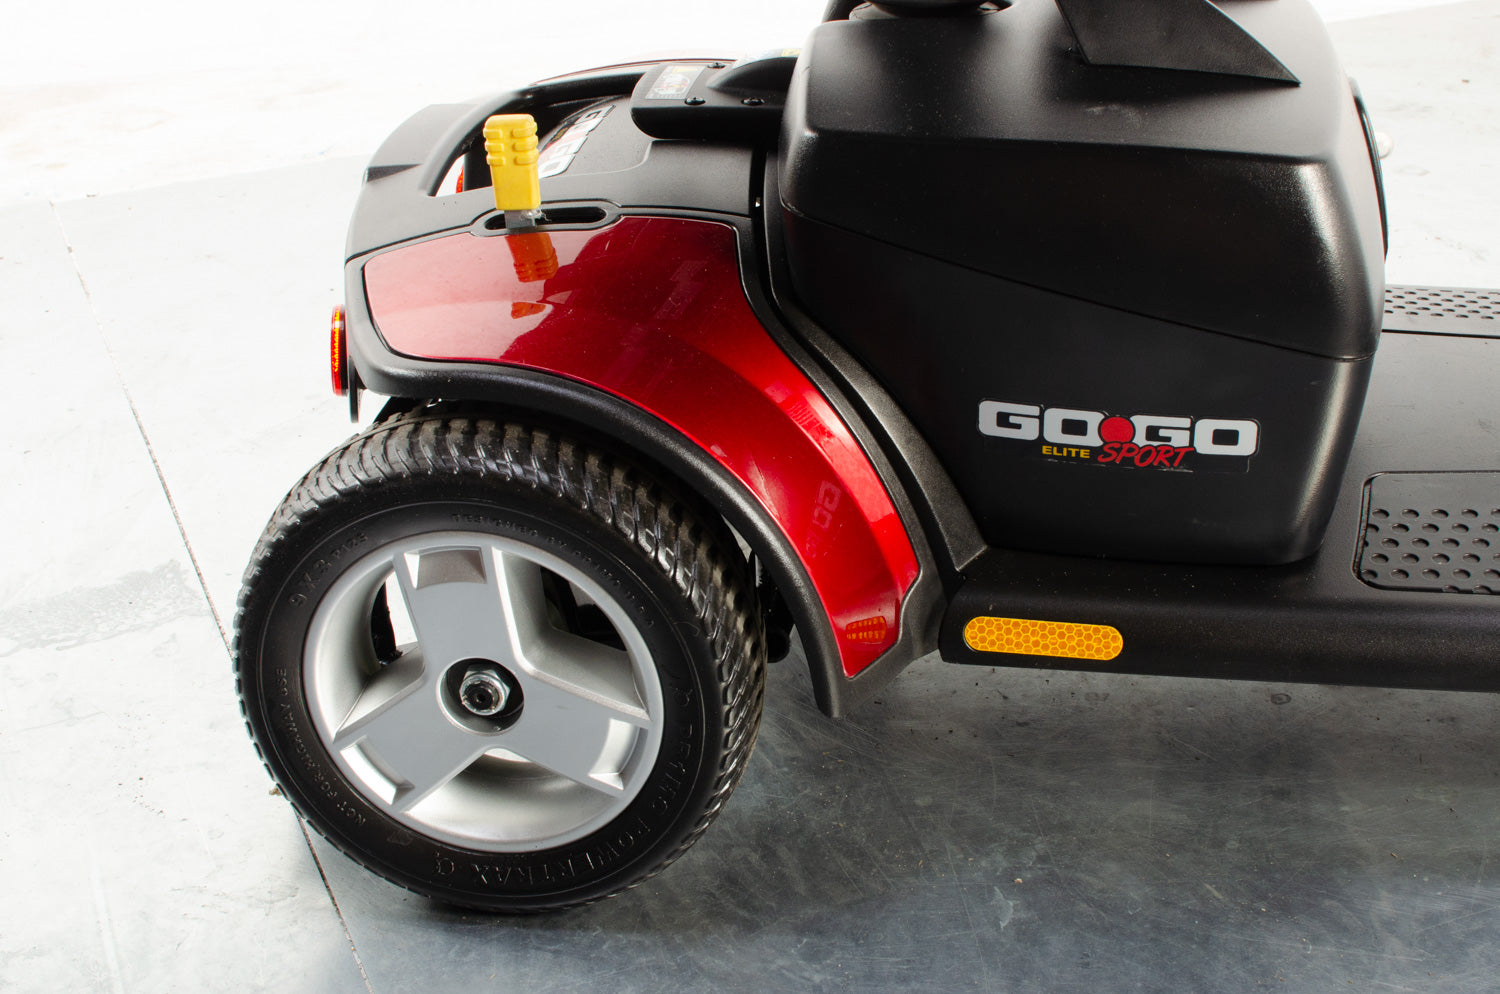 2018 Pride Go-Go Elite Traveller Sport 4mph Mobility Boot Scooter in Red